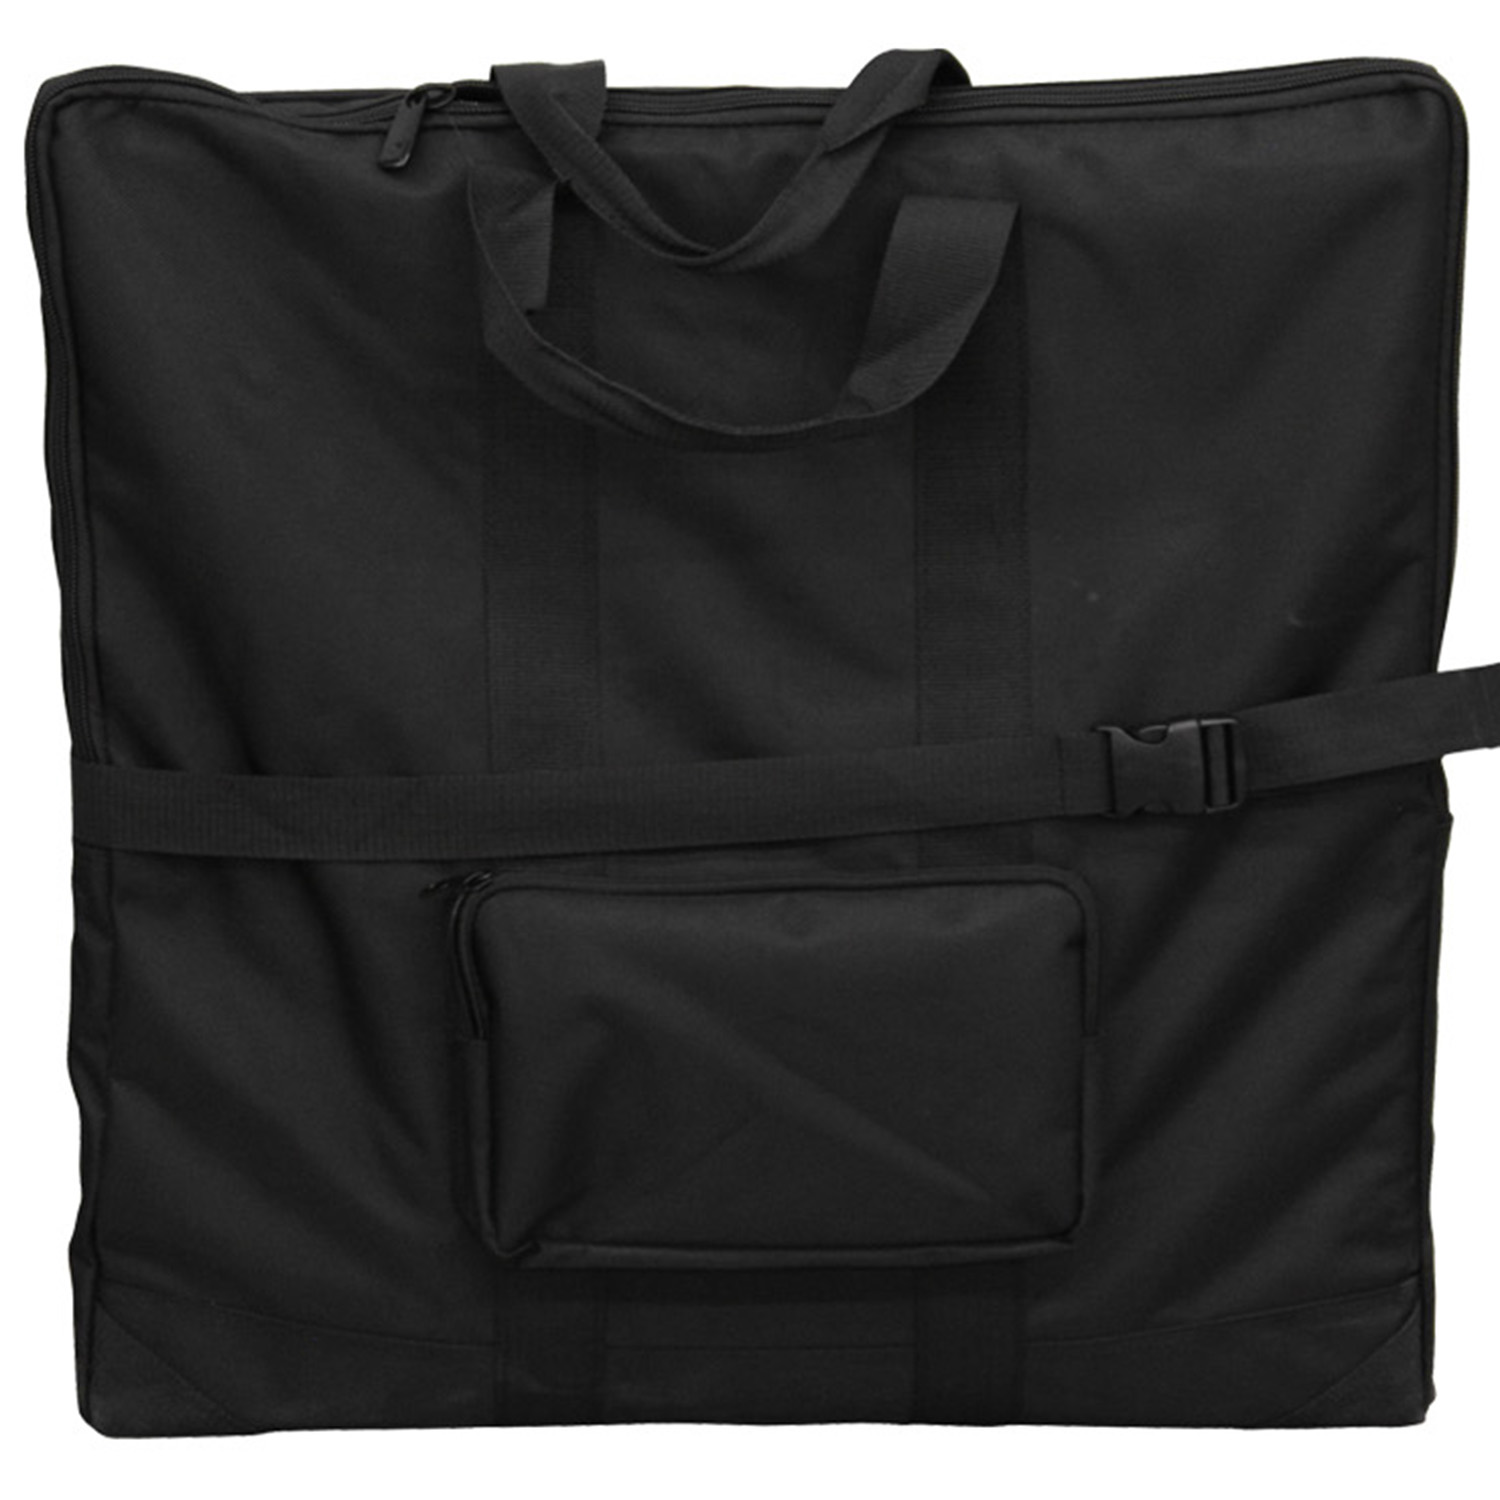 Base Plate Carrying Bag